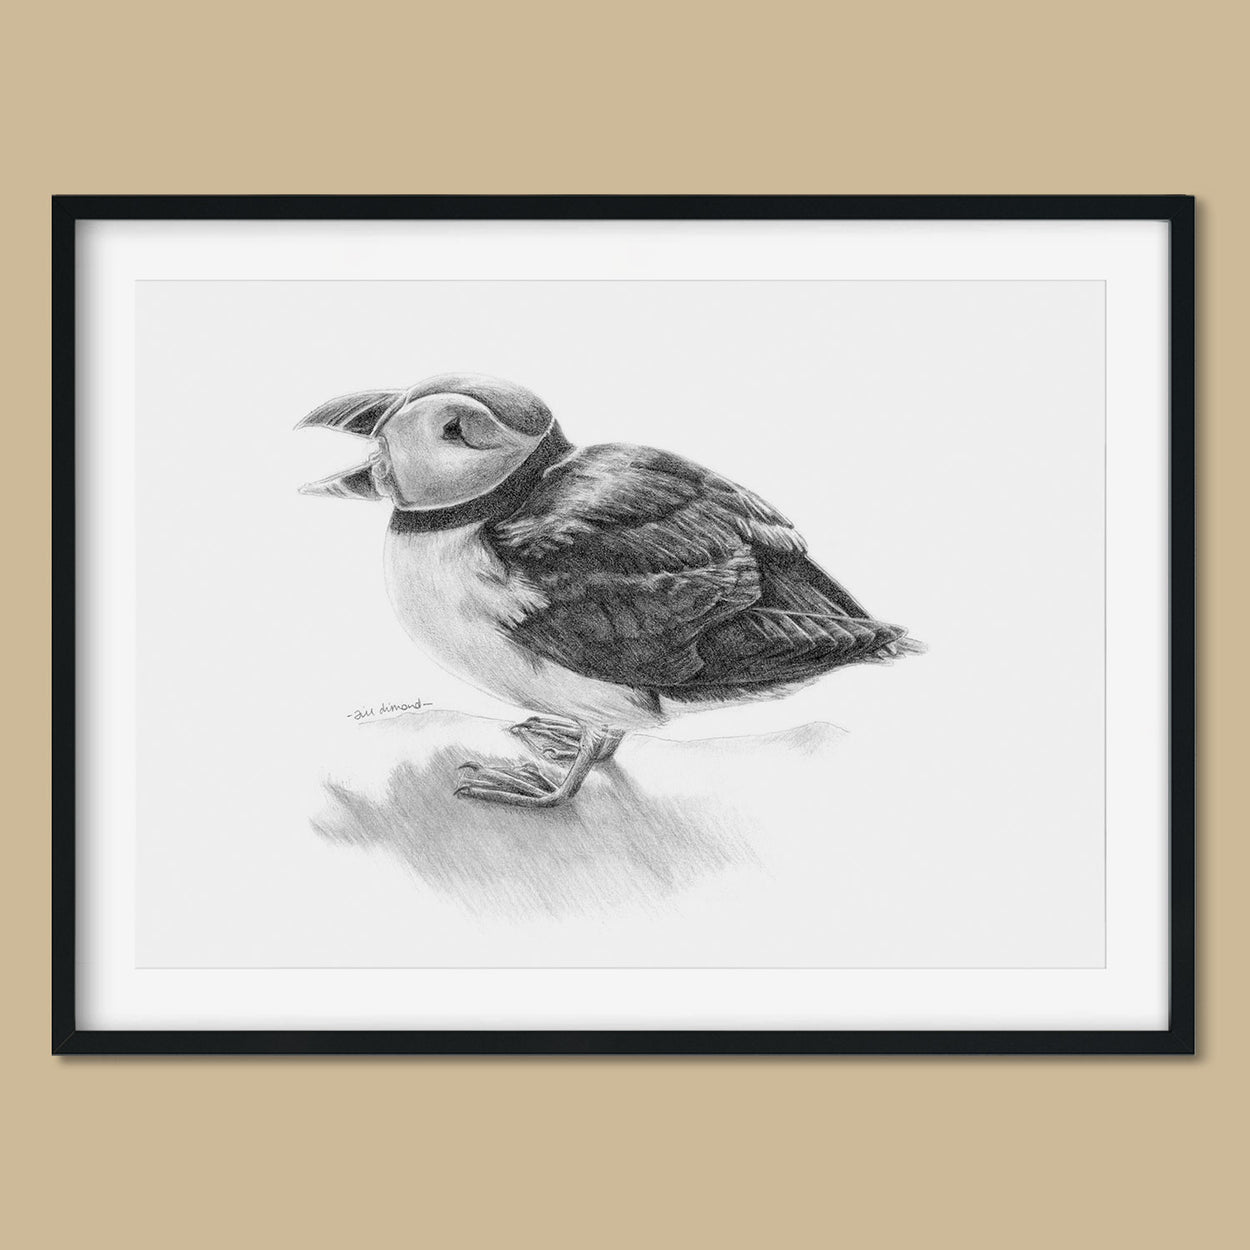 Puffin Drawing in Frame Flatlay - The Thriving Wild